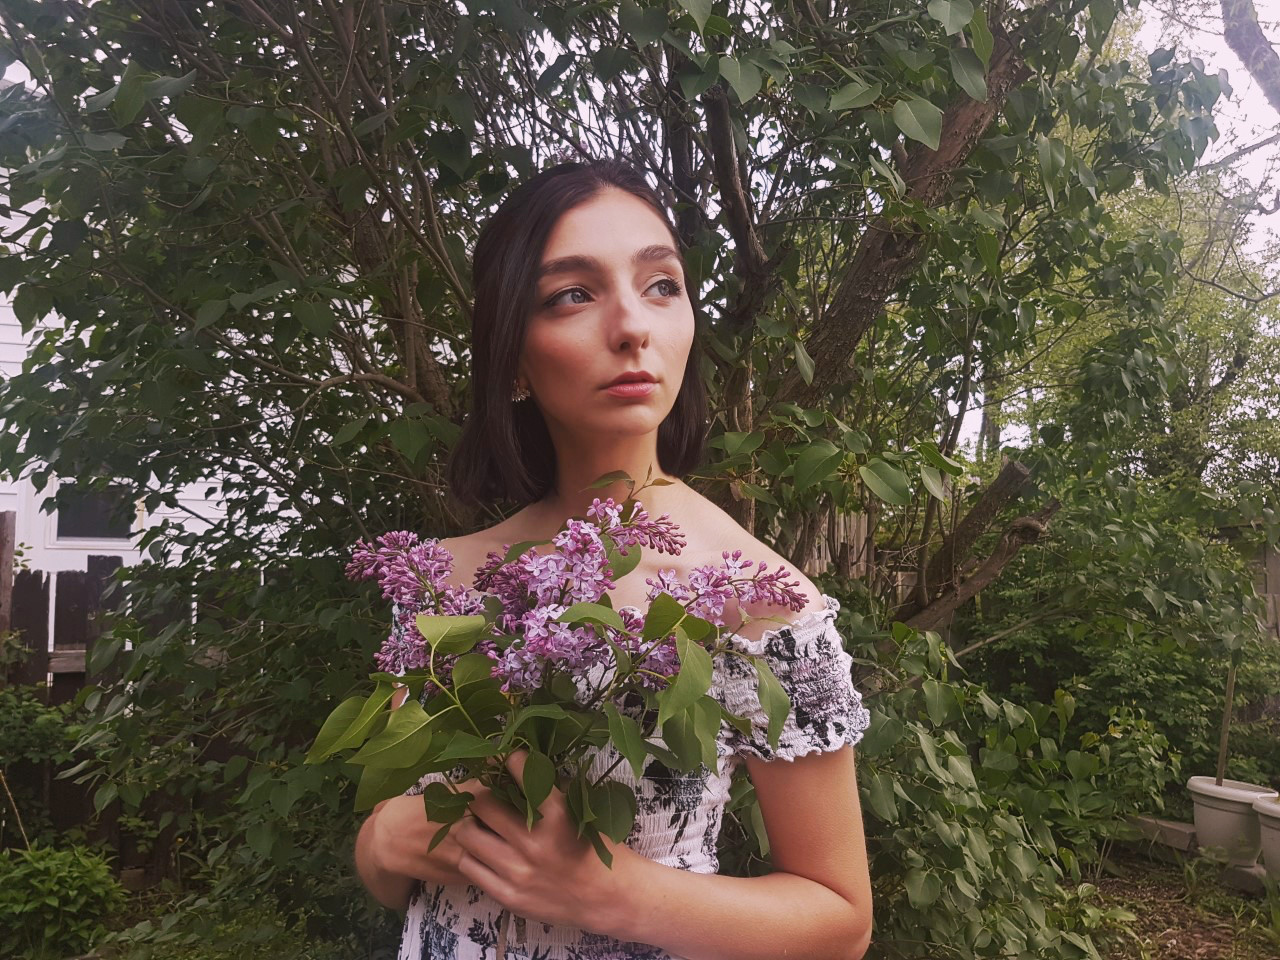 wedding, spring, flowers, beauty blogger, fashion, ootd, personal style, feminine, Montreal